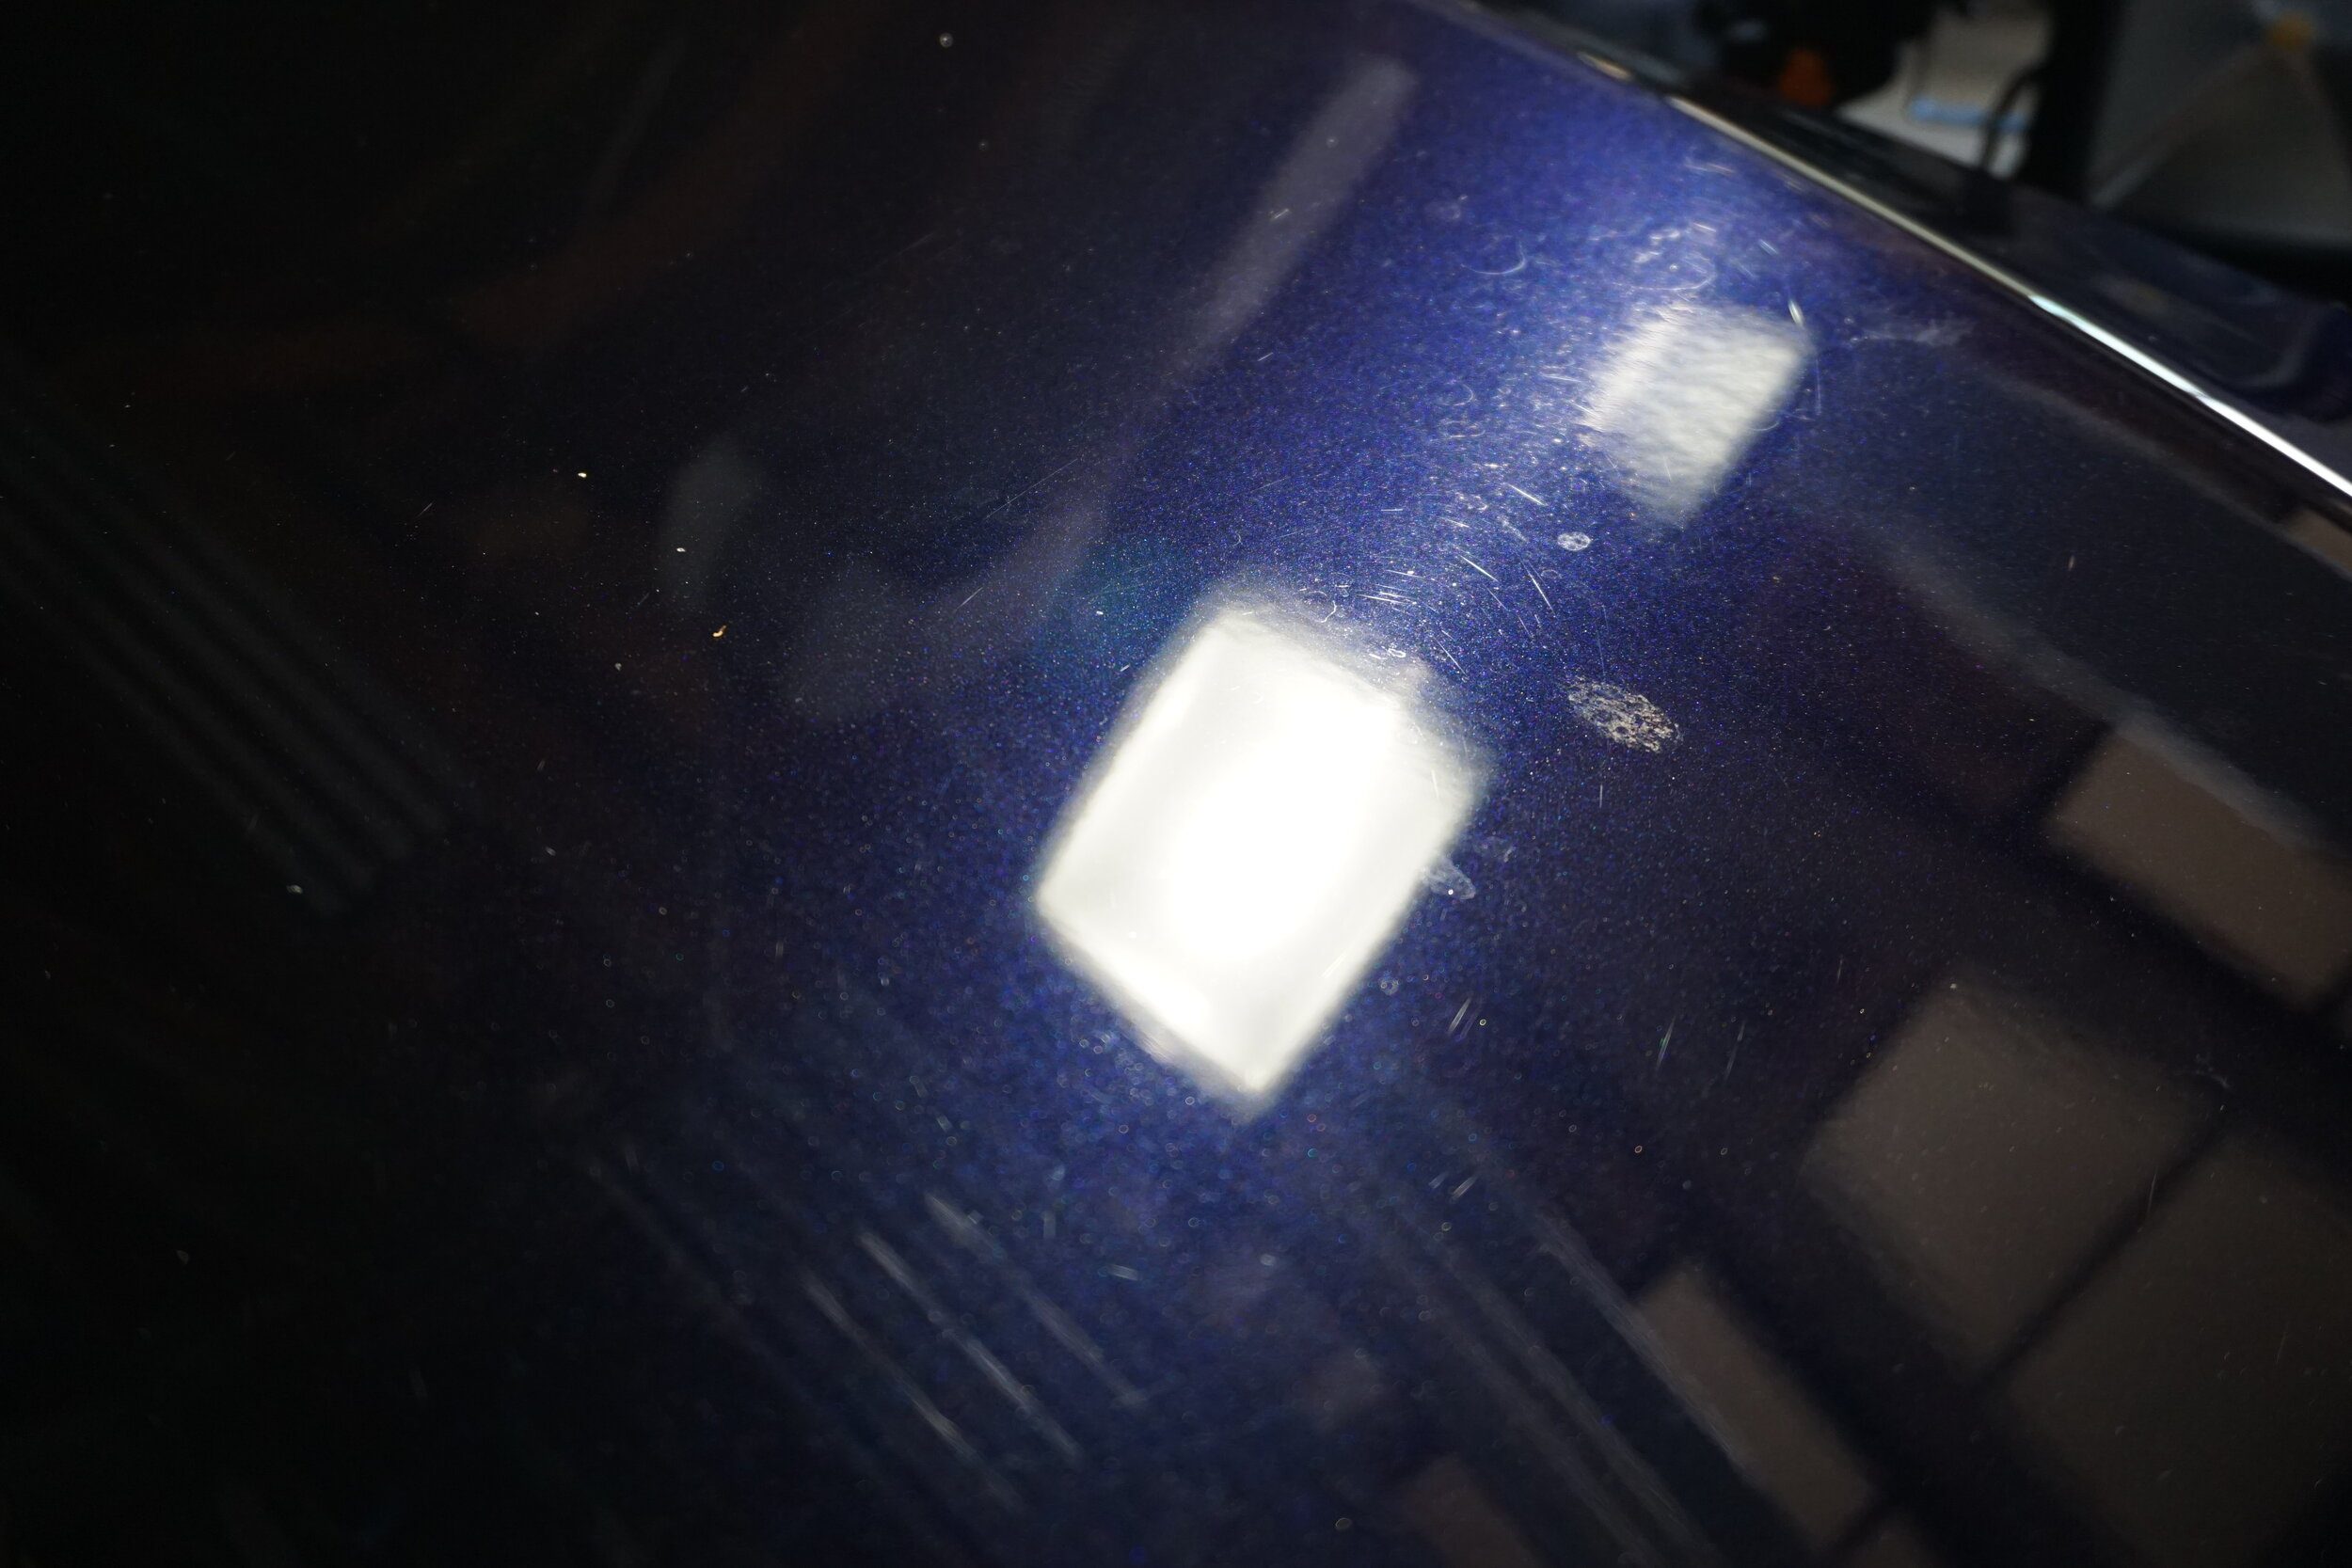 Some water spot etching and scratches all over. Hood before